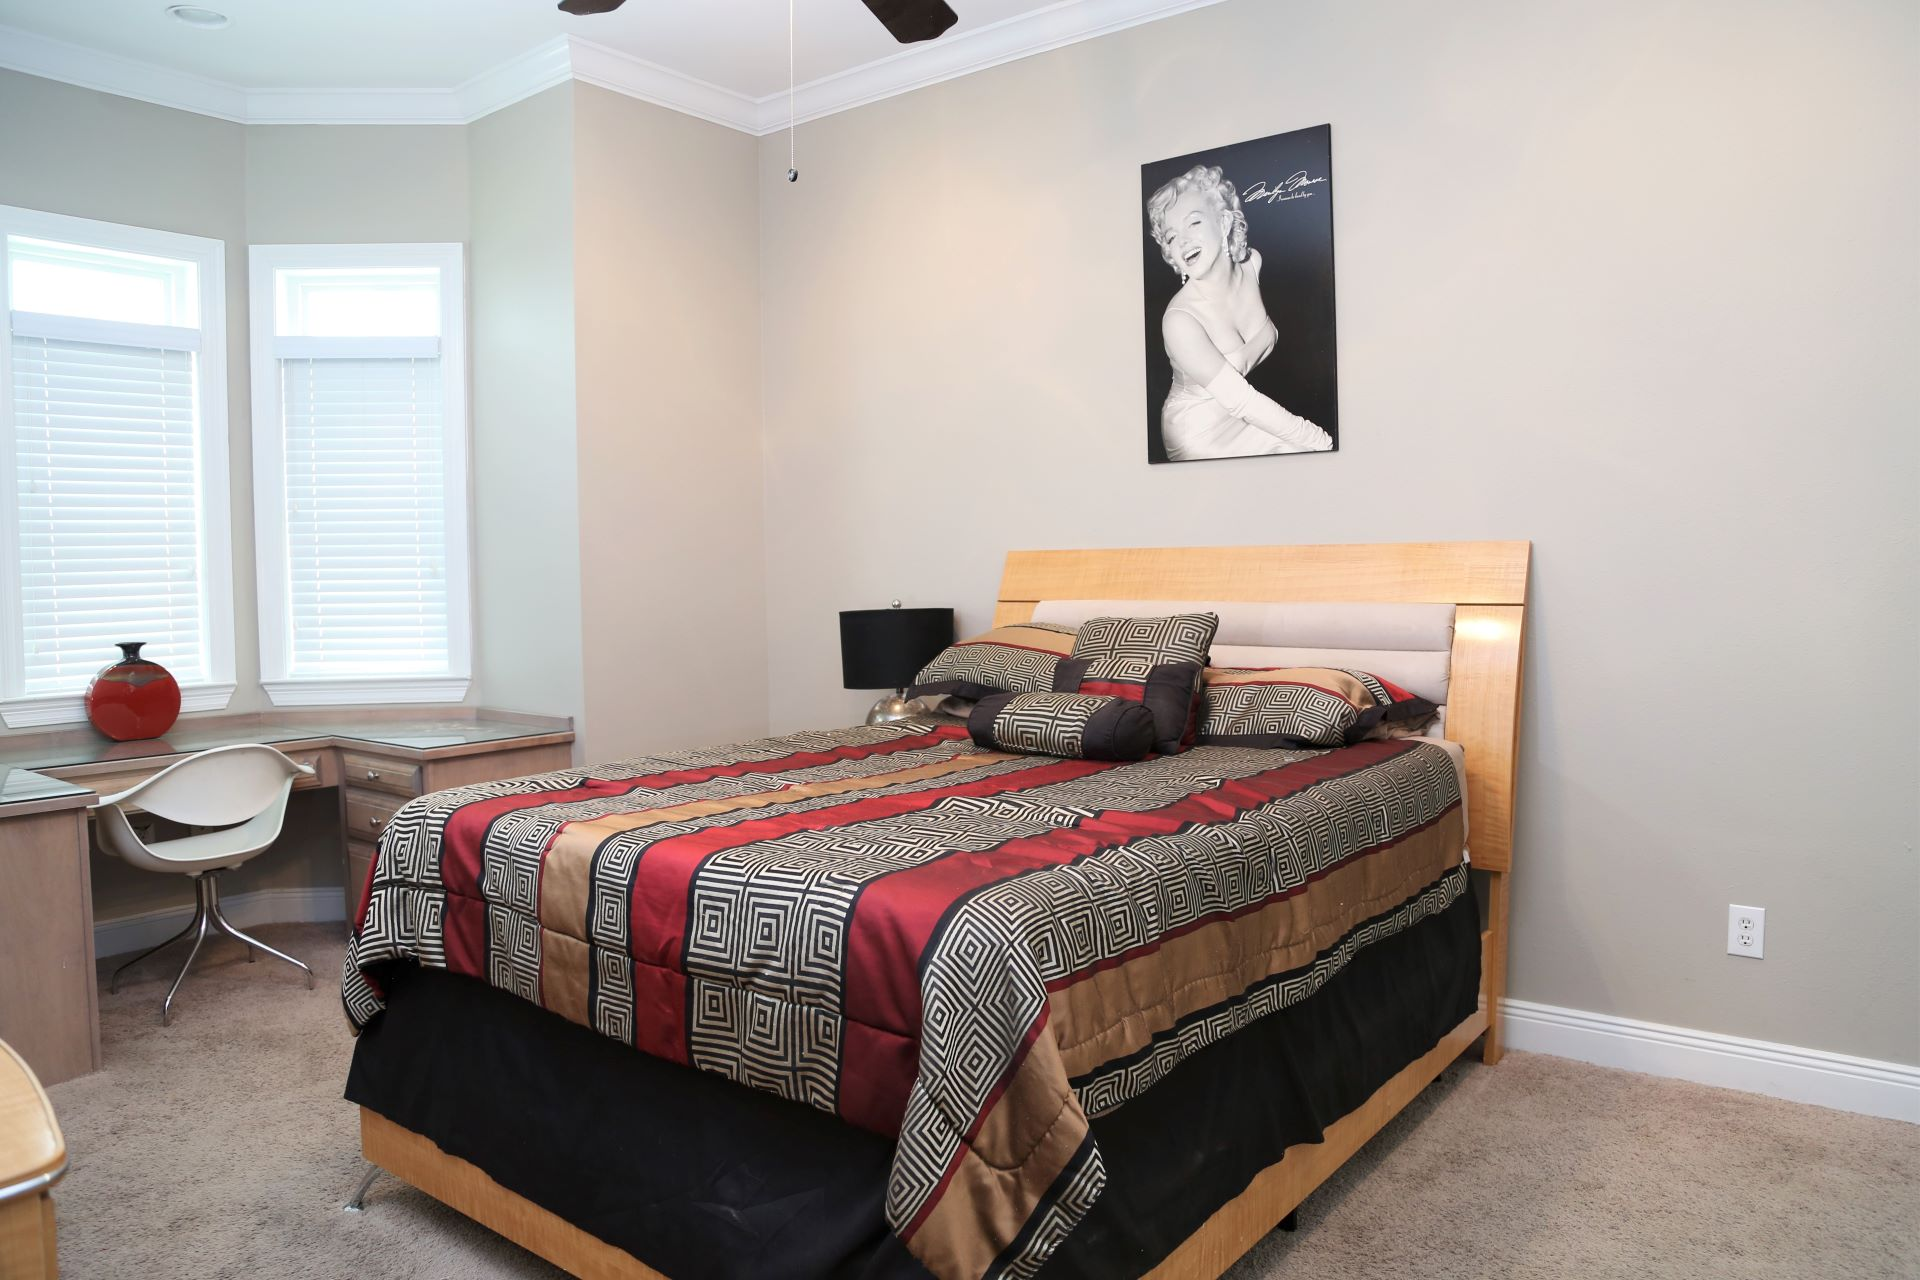 The first bedroom includes a Queen-sized bed.